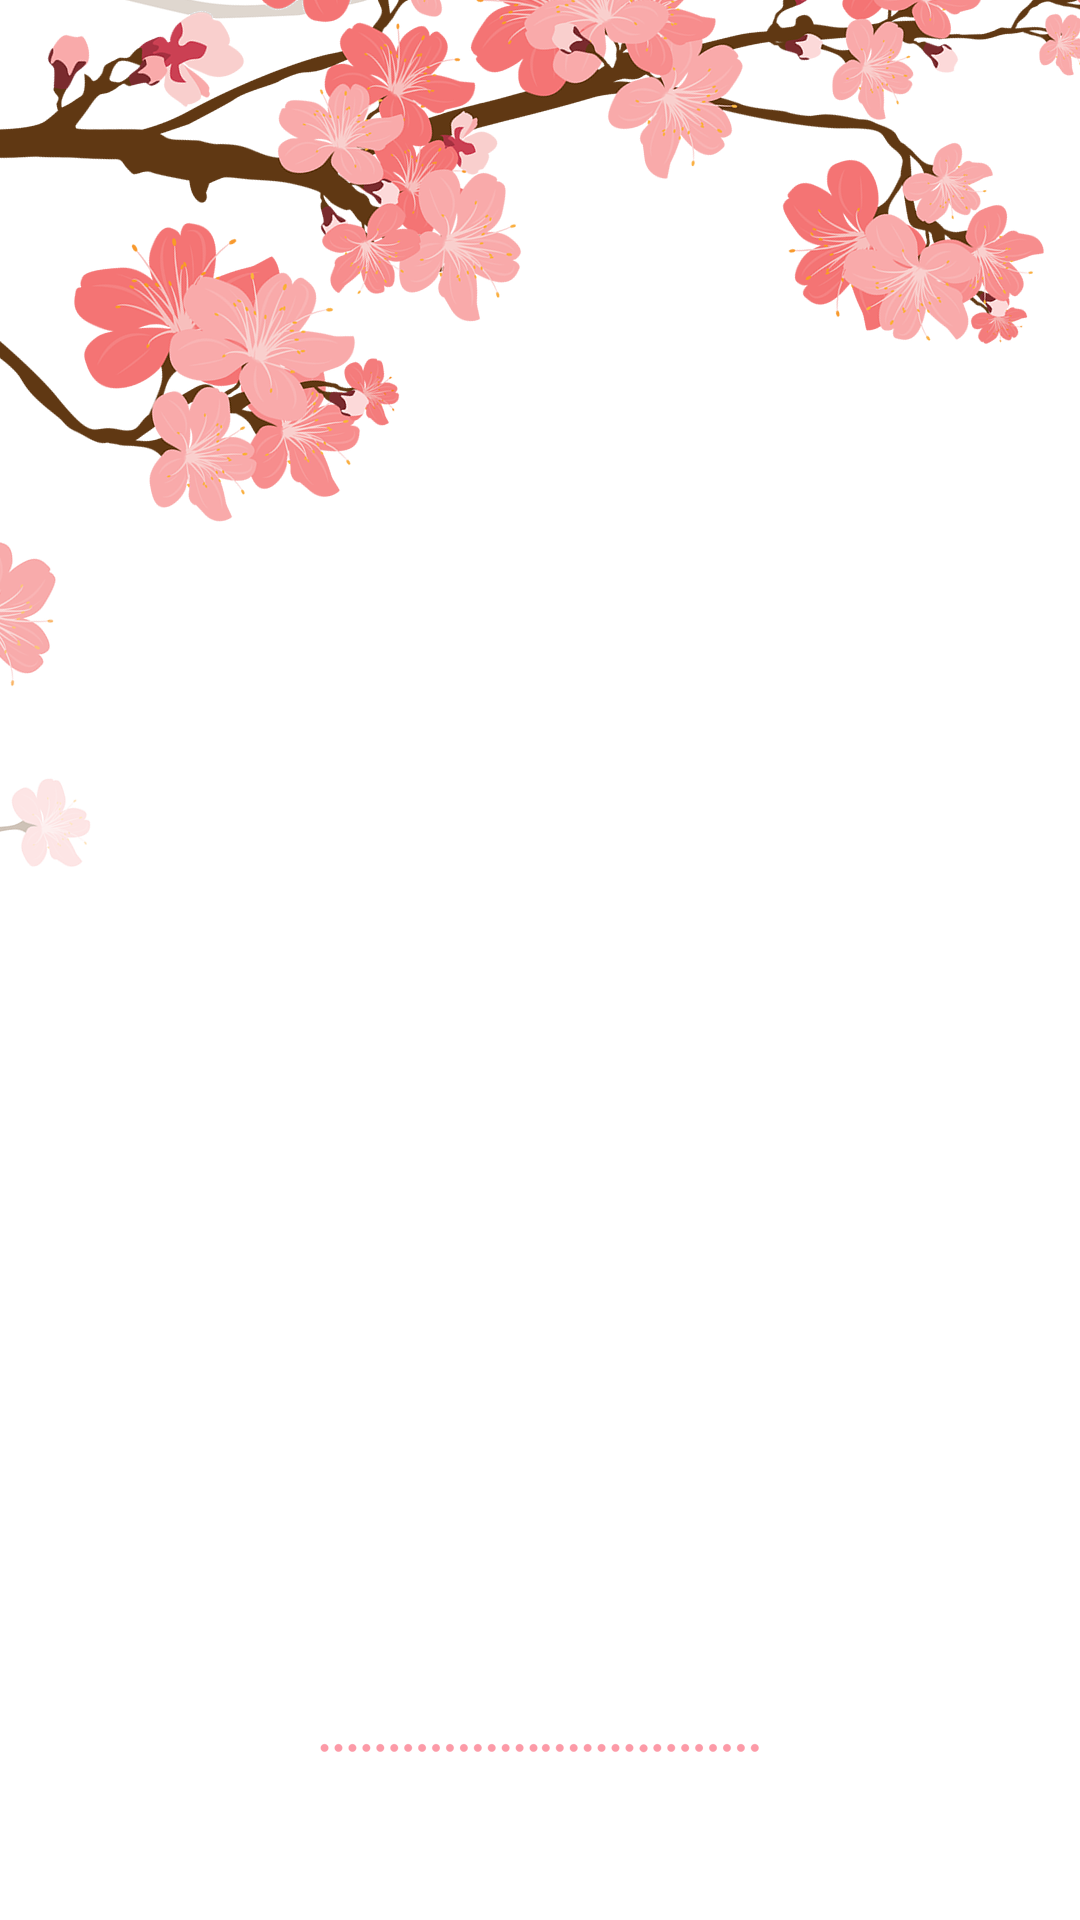 Snapchat filters wedding png. Cherry blossom filter geofilter